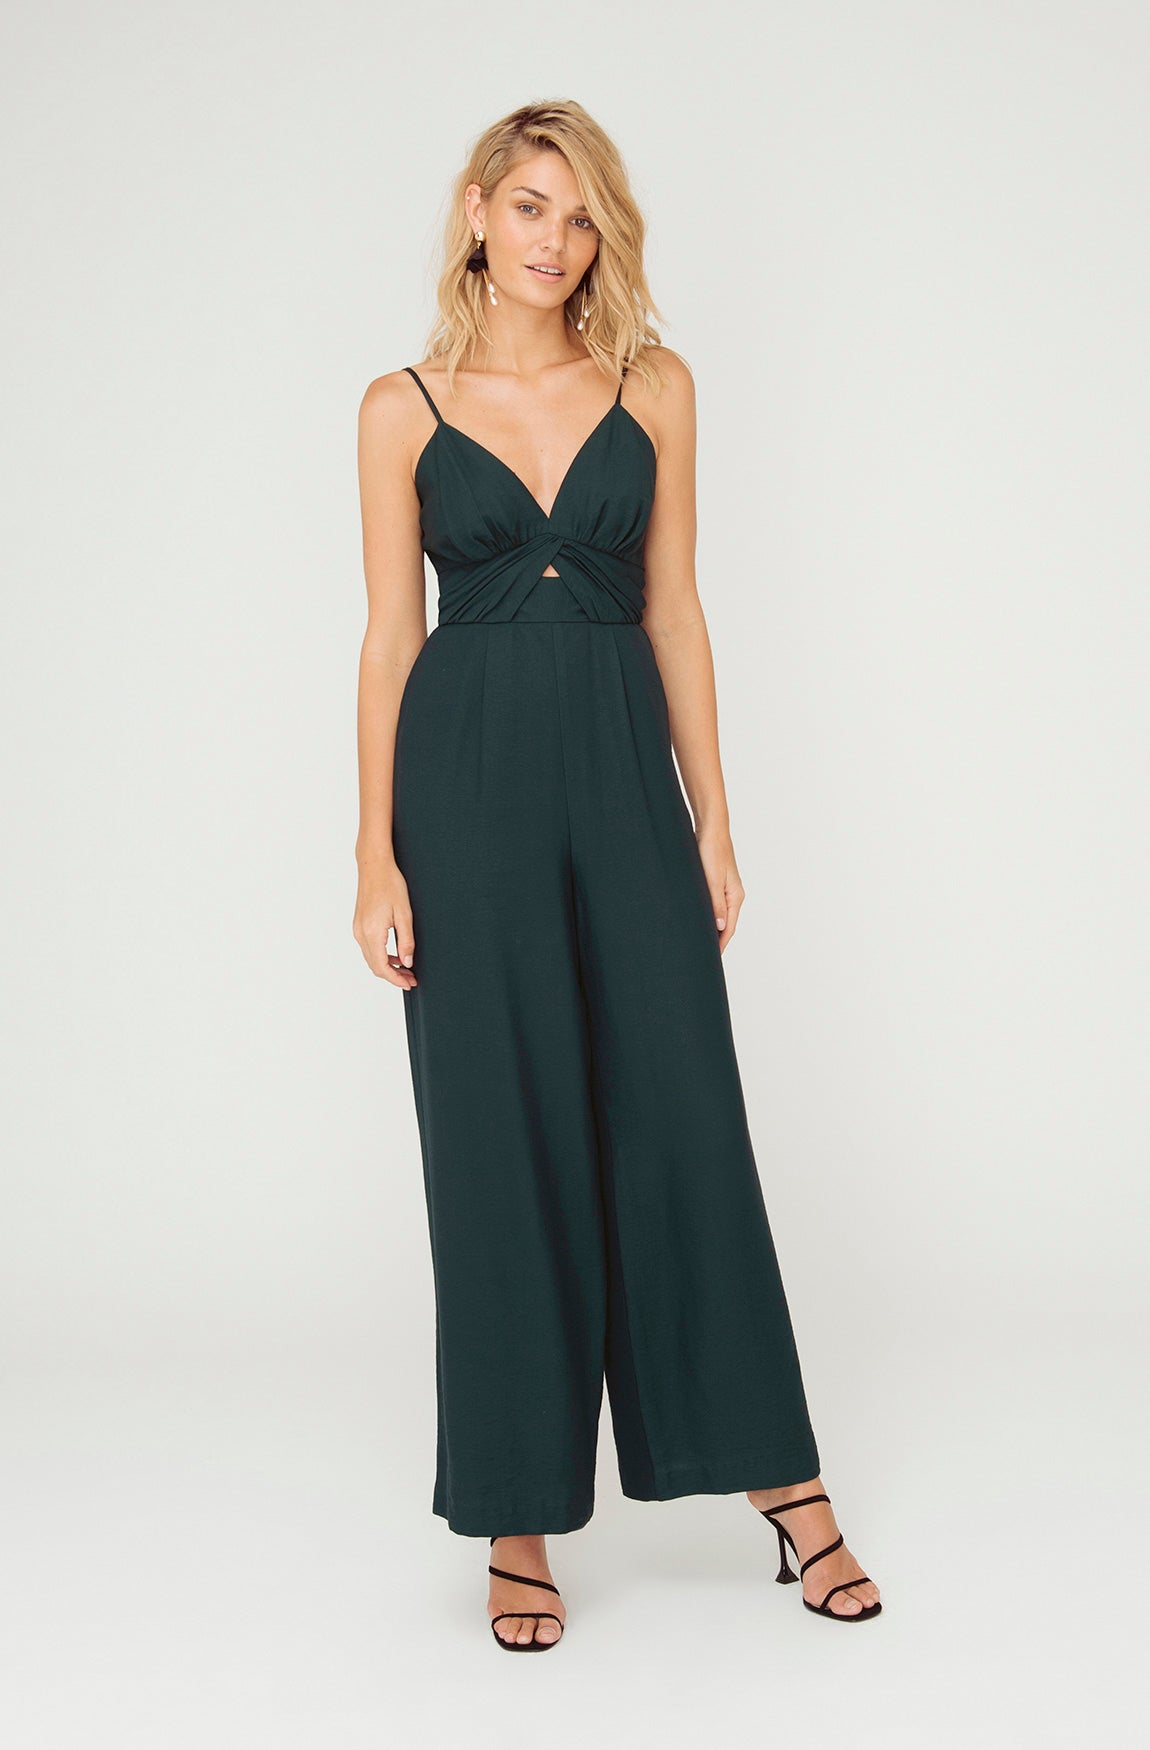 REVOLUTION JUMPSUIT